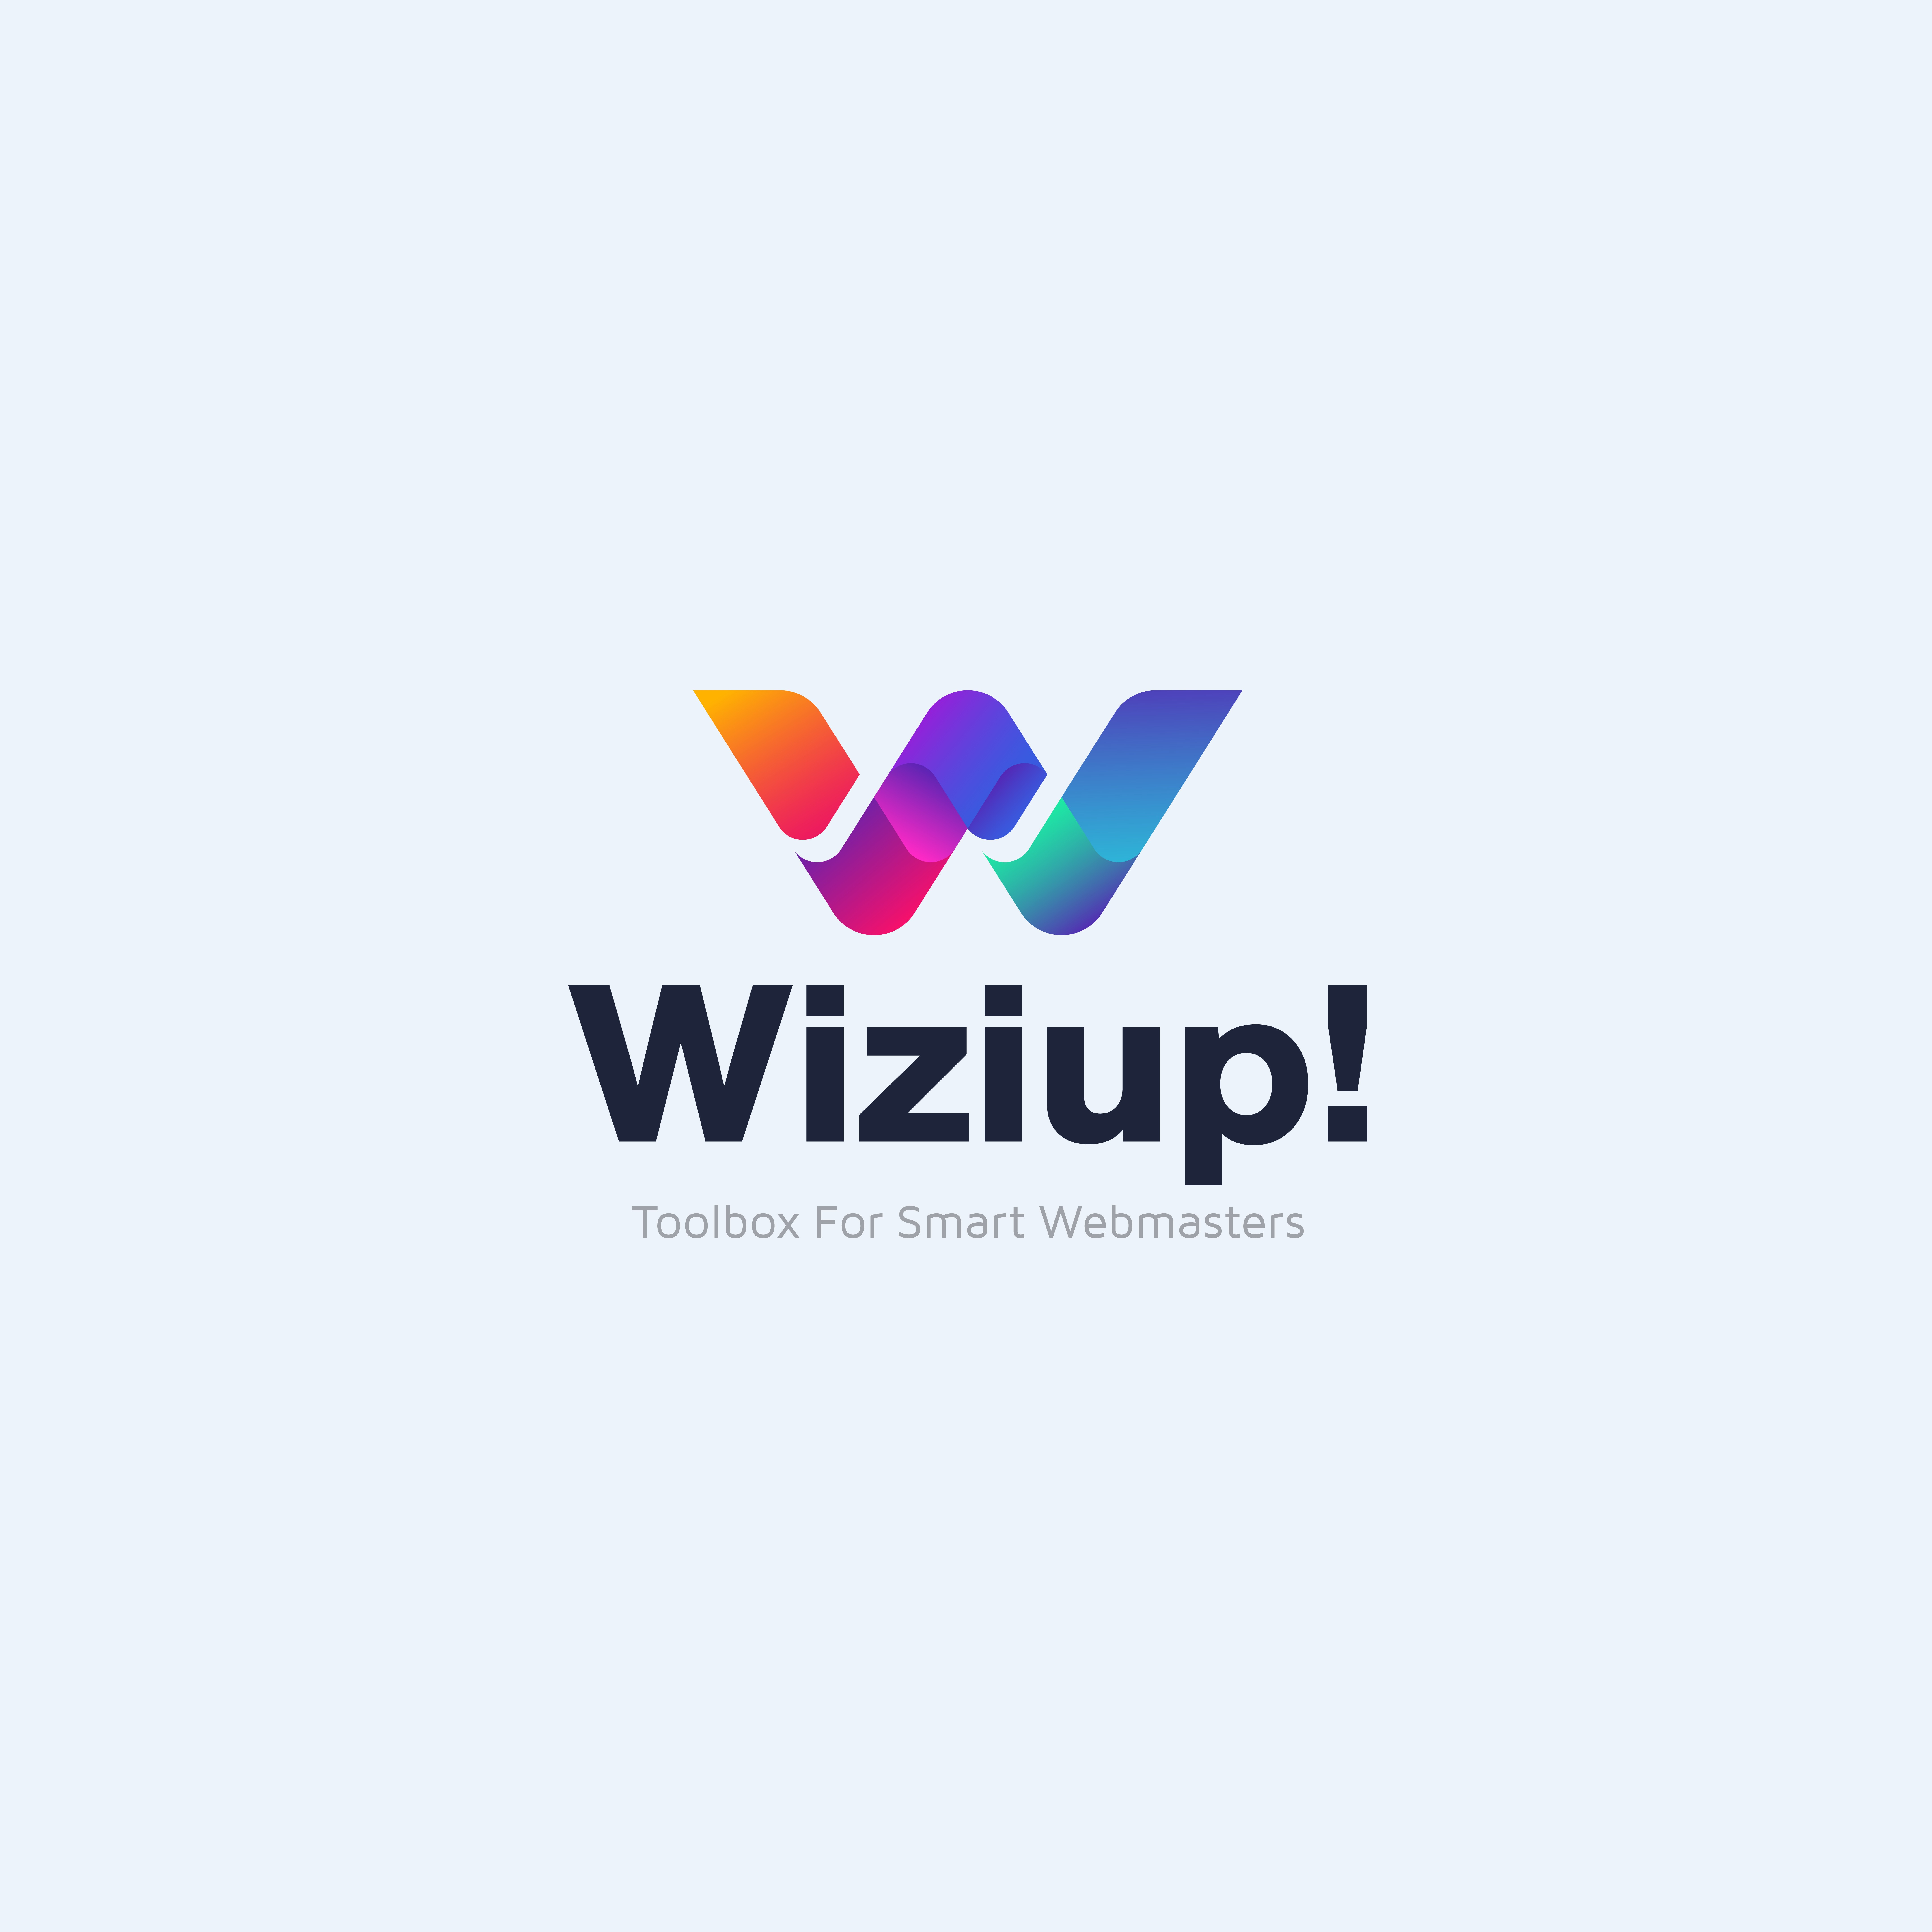 WIZIUP! A NEW CONCEPT IN WEBMASTER WORLD